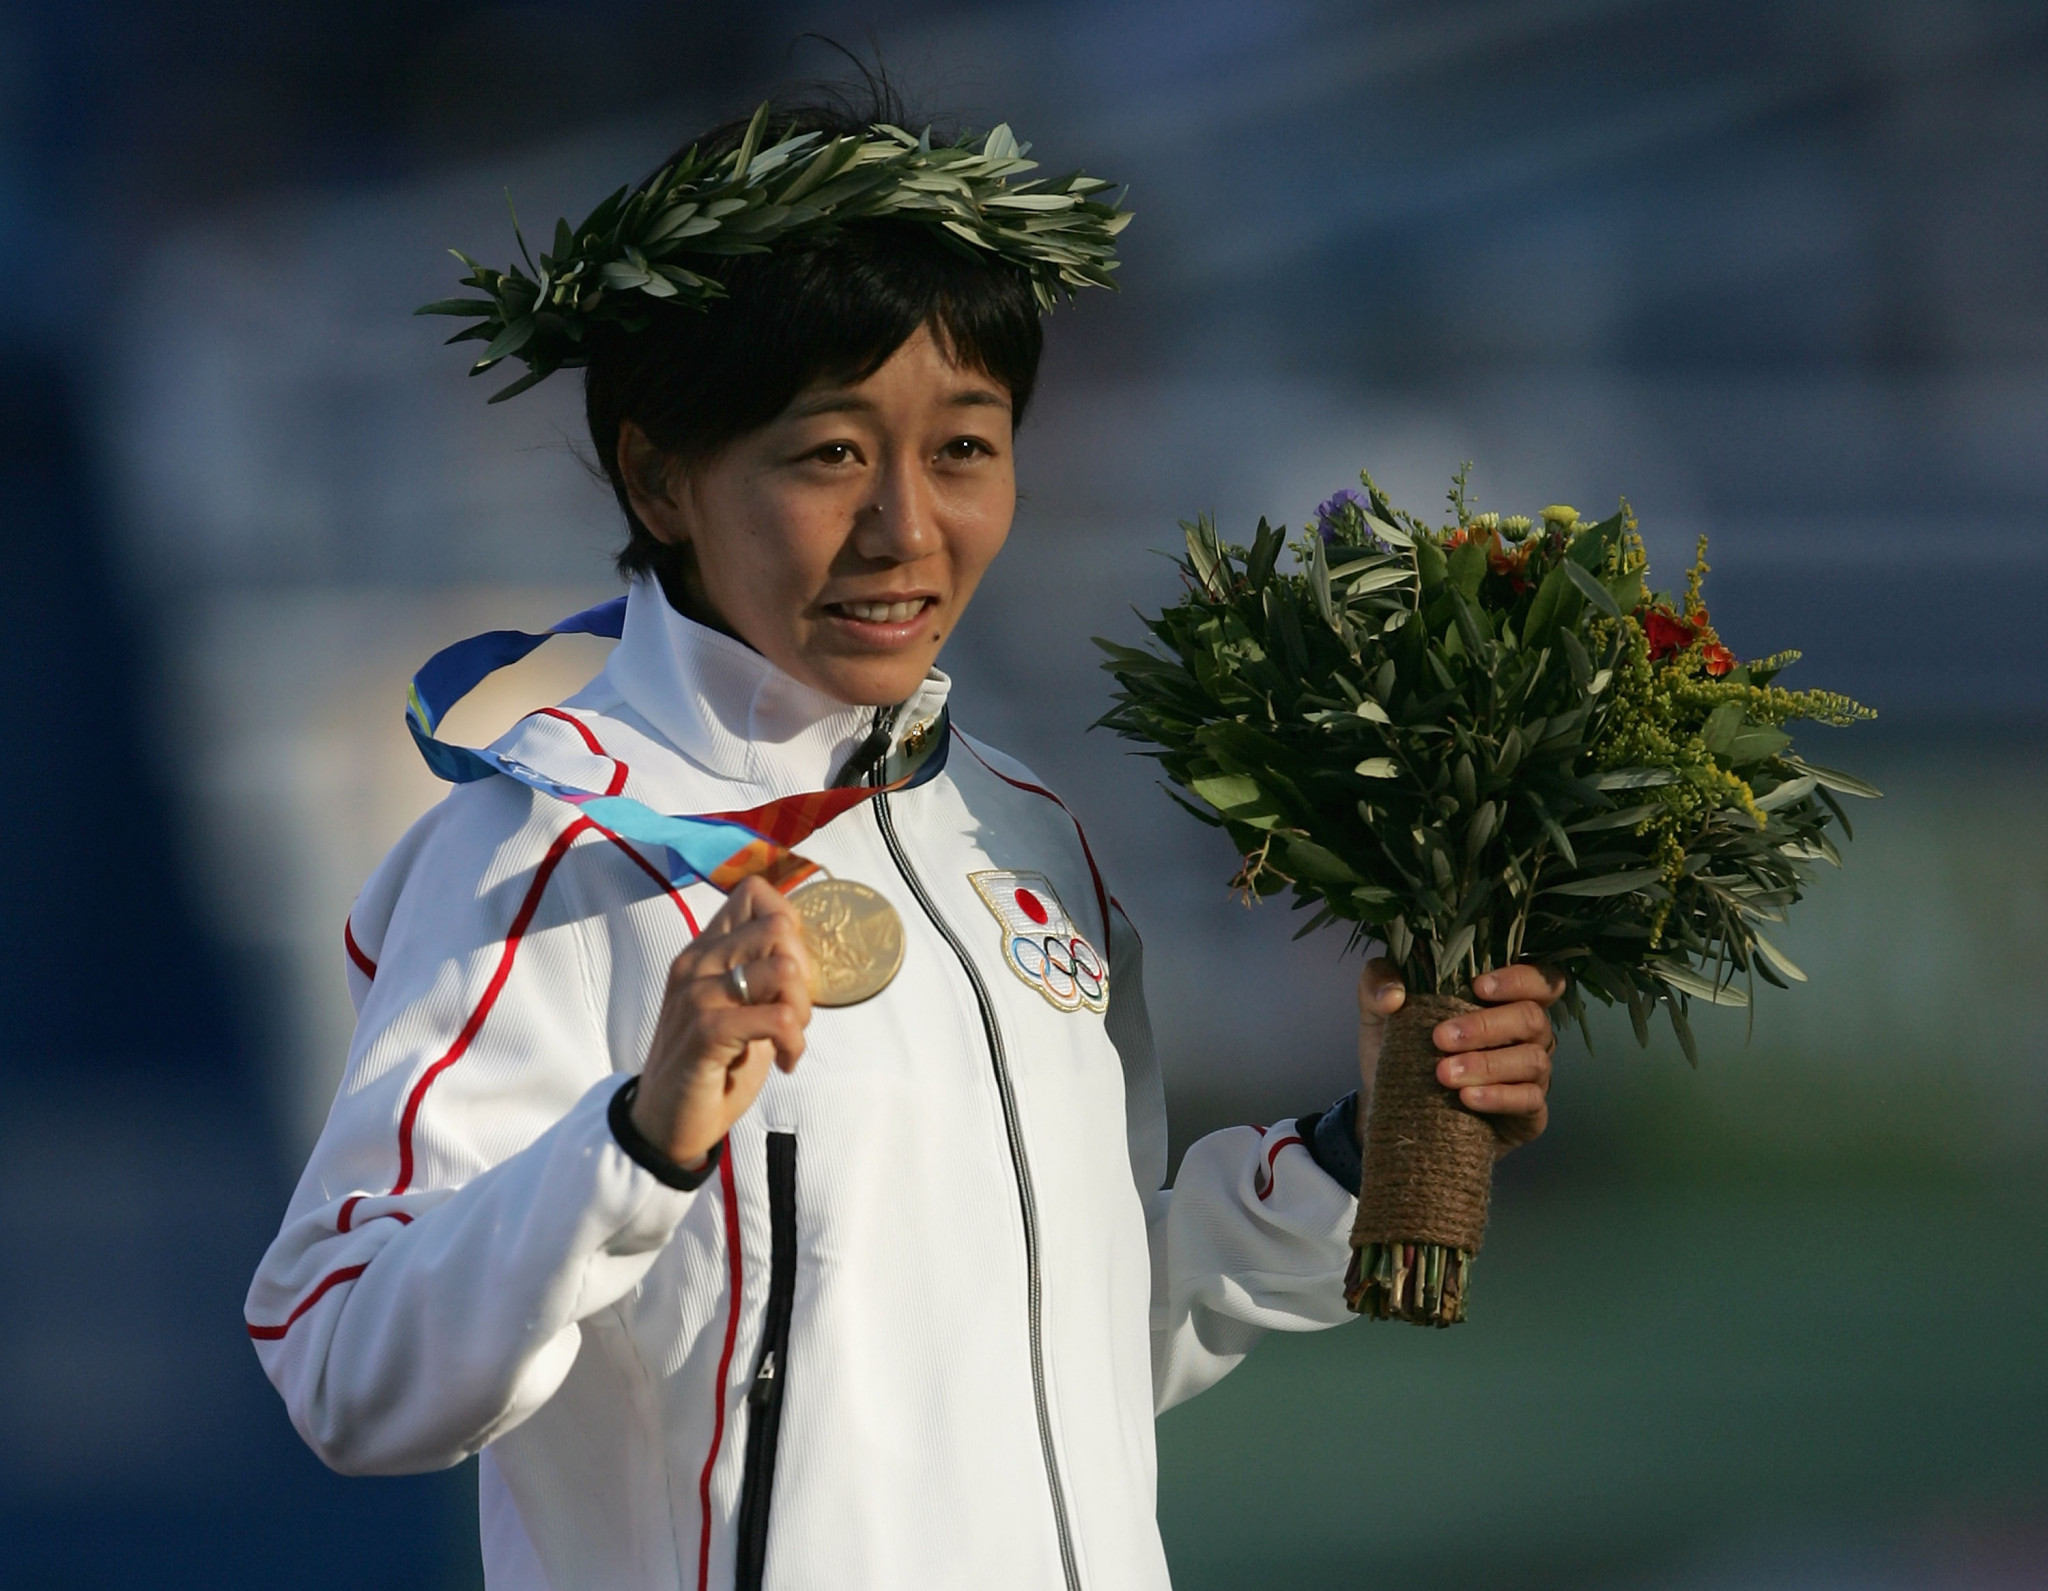 Mizuki Noguchi could be the first Japanese Torchbearer after the flame is lit in Greece ©Getty Images